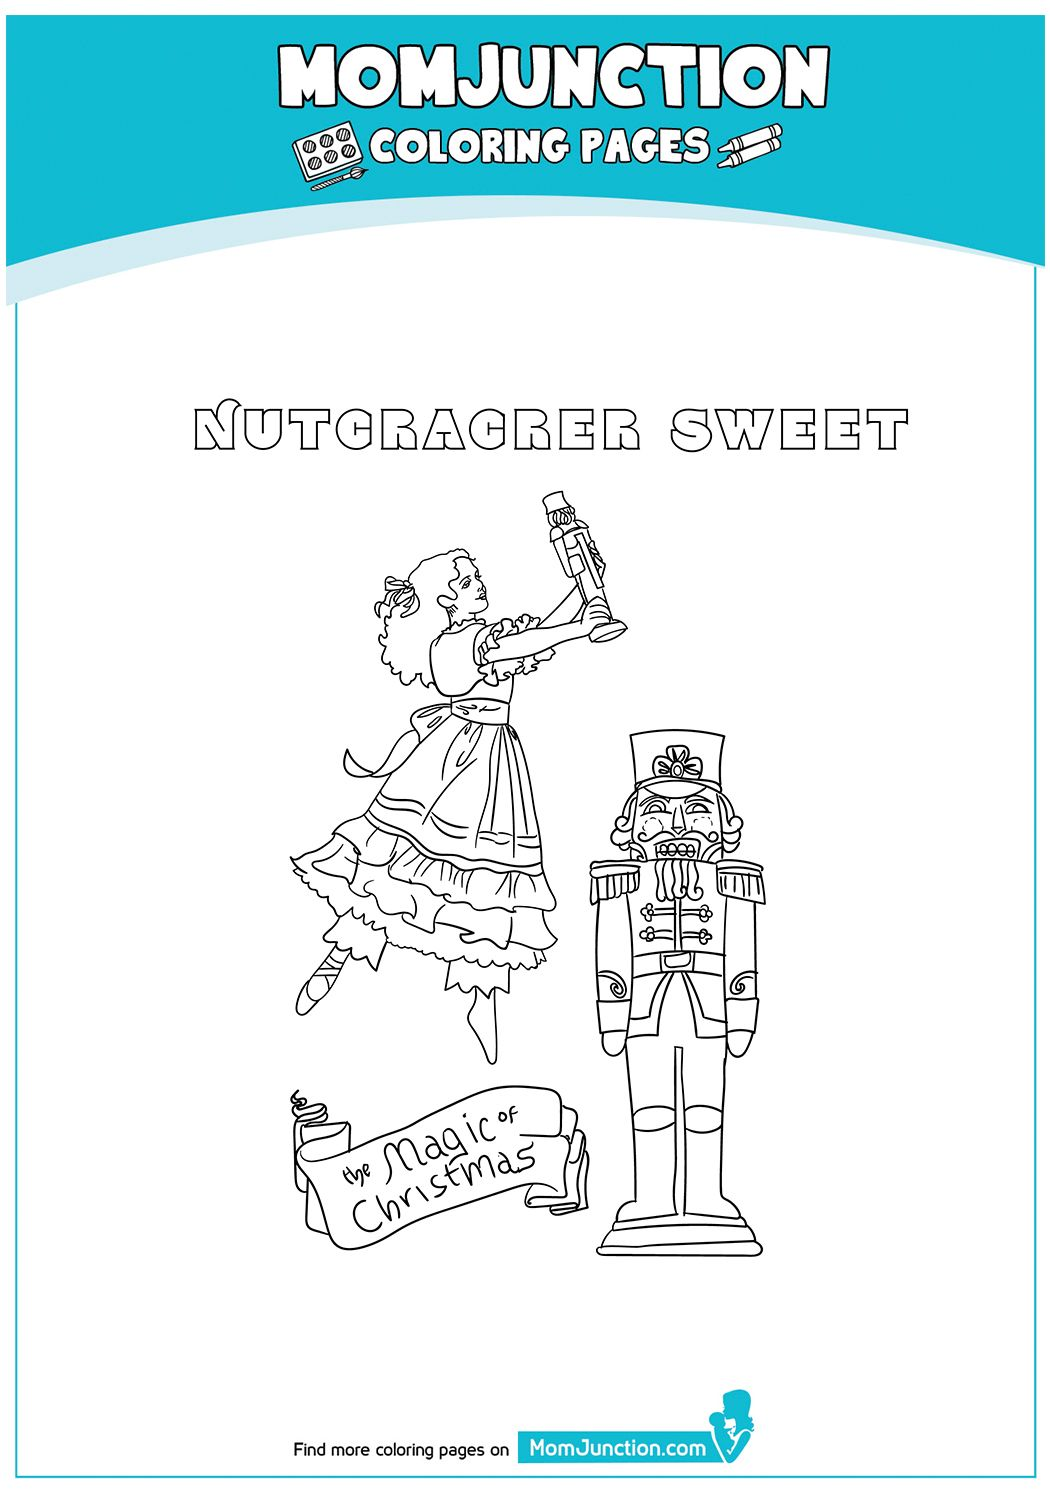 Print Coloring Image Momjunction Coloring Pages Color Mom